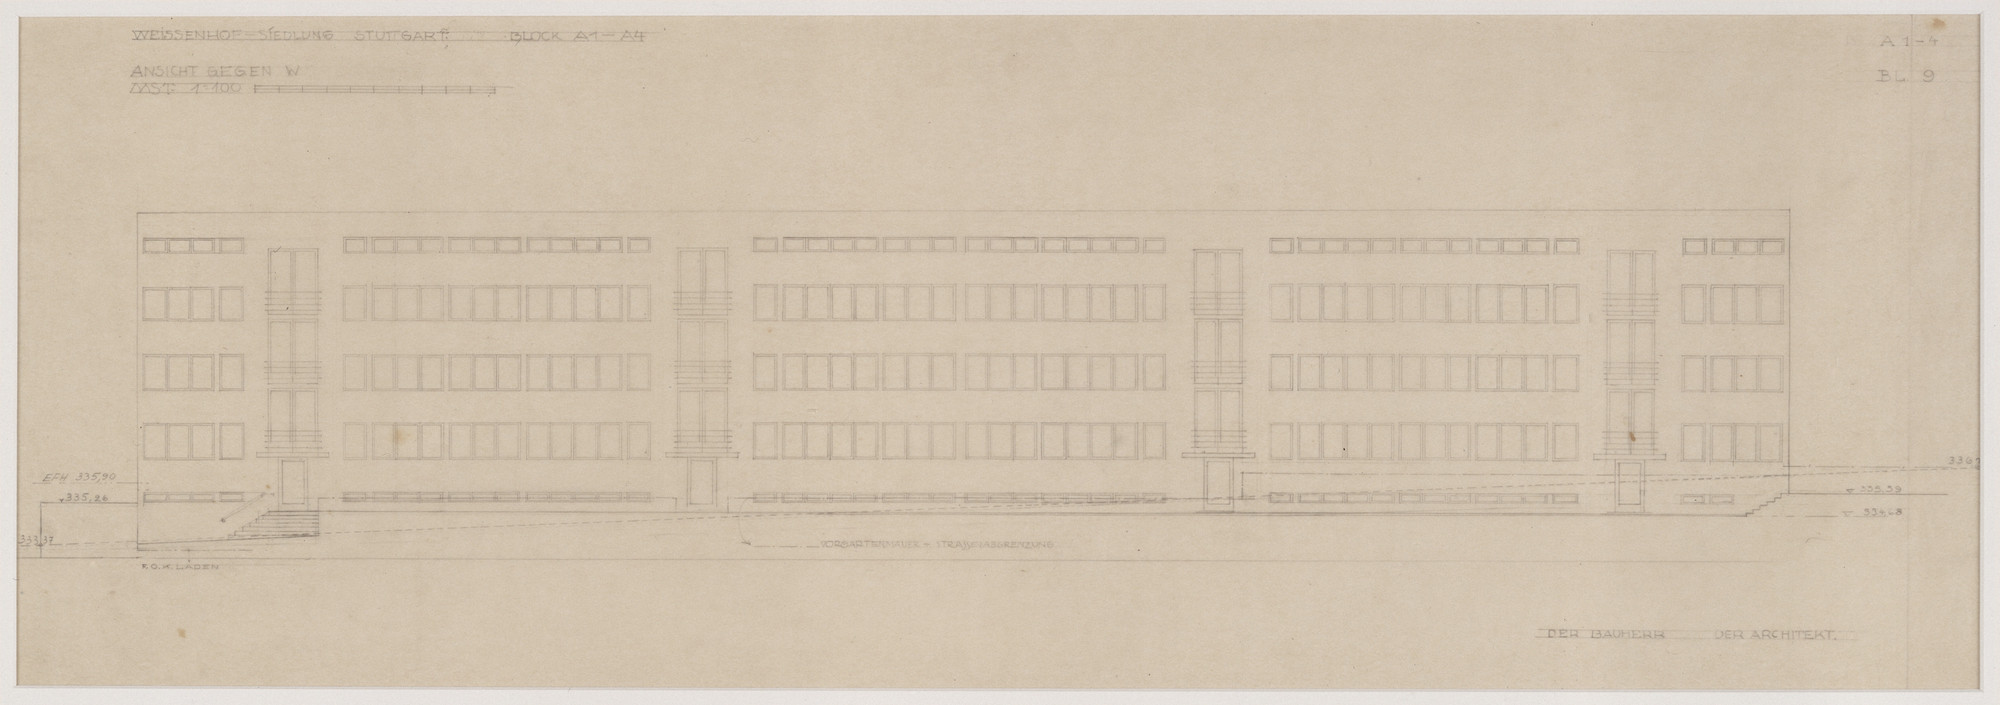 "Ludwig Mies van der Rohe. Weissenhof Apartment House, ""The Dwelling"" Exhibition, Stuttgart, Germany, West elevation. 1926-1927"